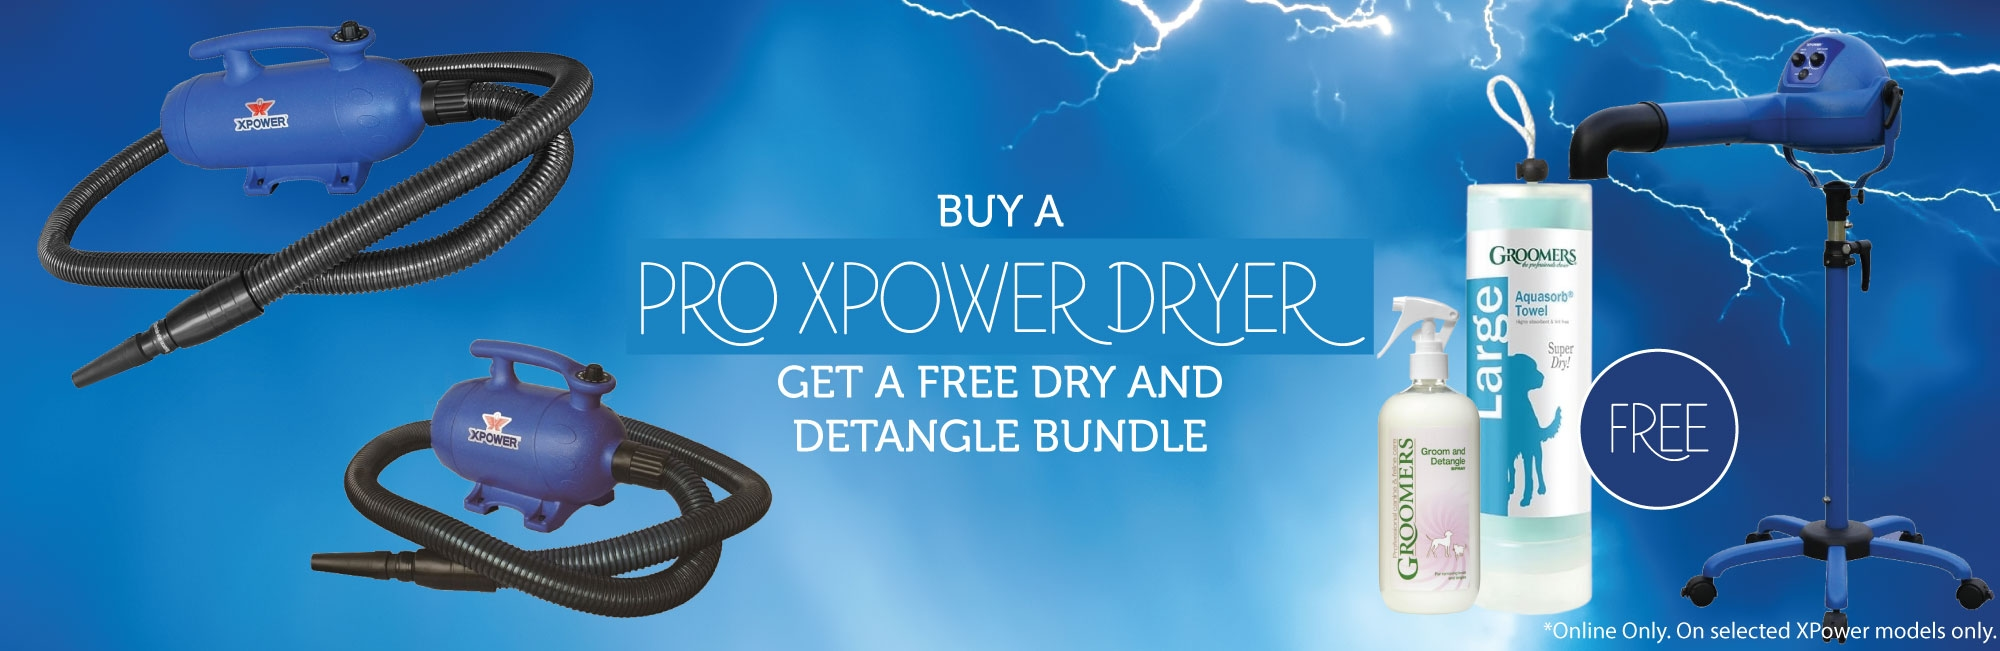 Buy A Pro XPower Dryer, Get A Free Dry And Detangle Bundle